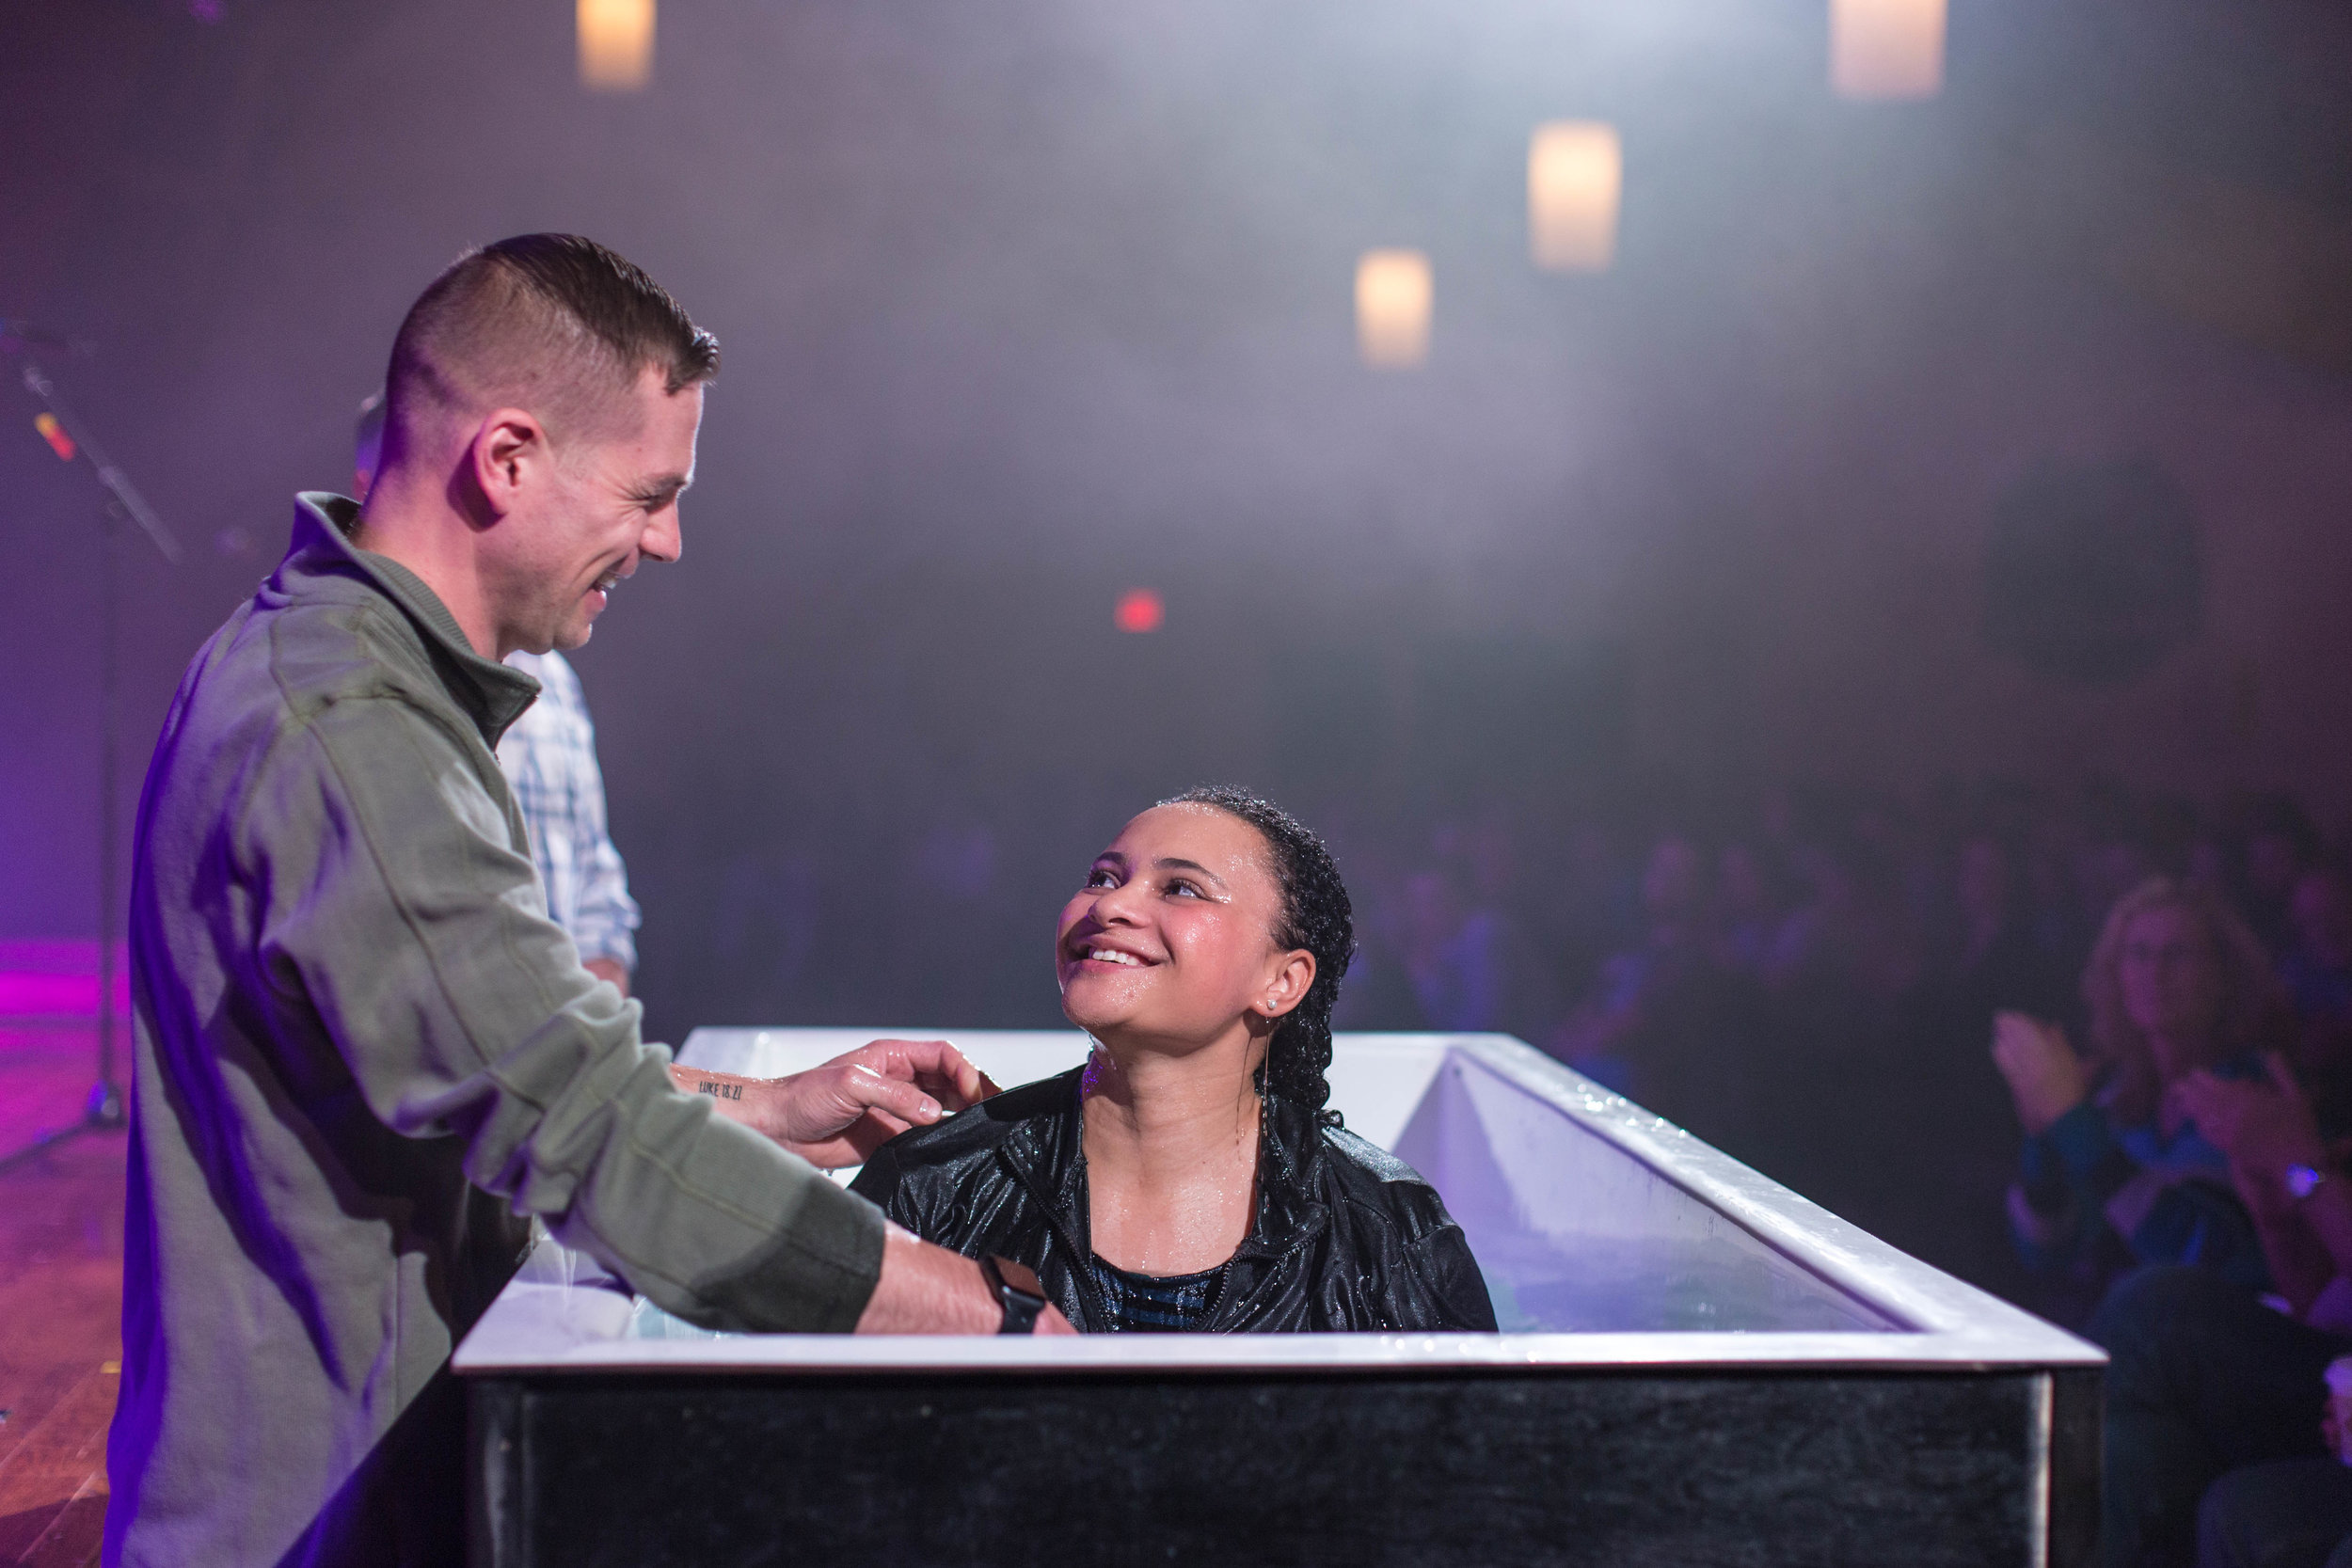 BAPTISM - Declare whose you are! Baptism is going public with your decision to follow Jesus.Once you have put your faith in Christ, baptism is the next step, and we love celebrating that God has made you a new creation.Are you ready for this step?